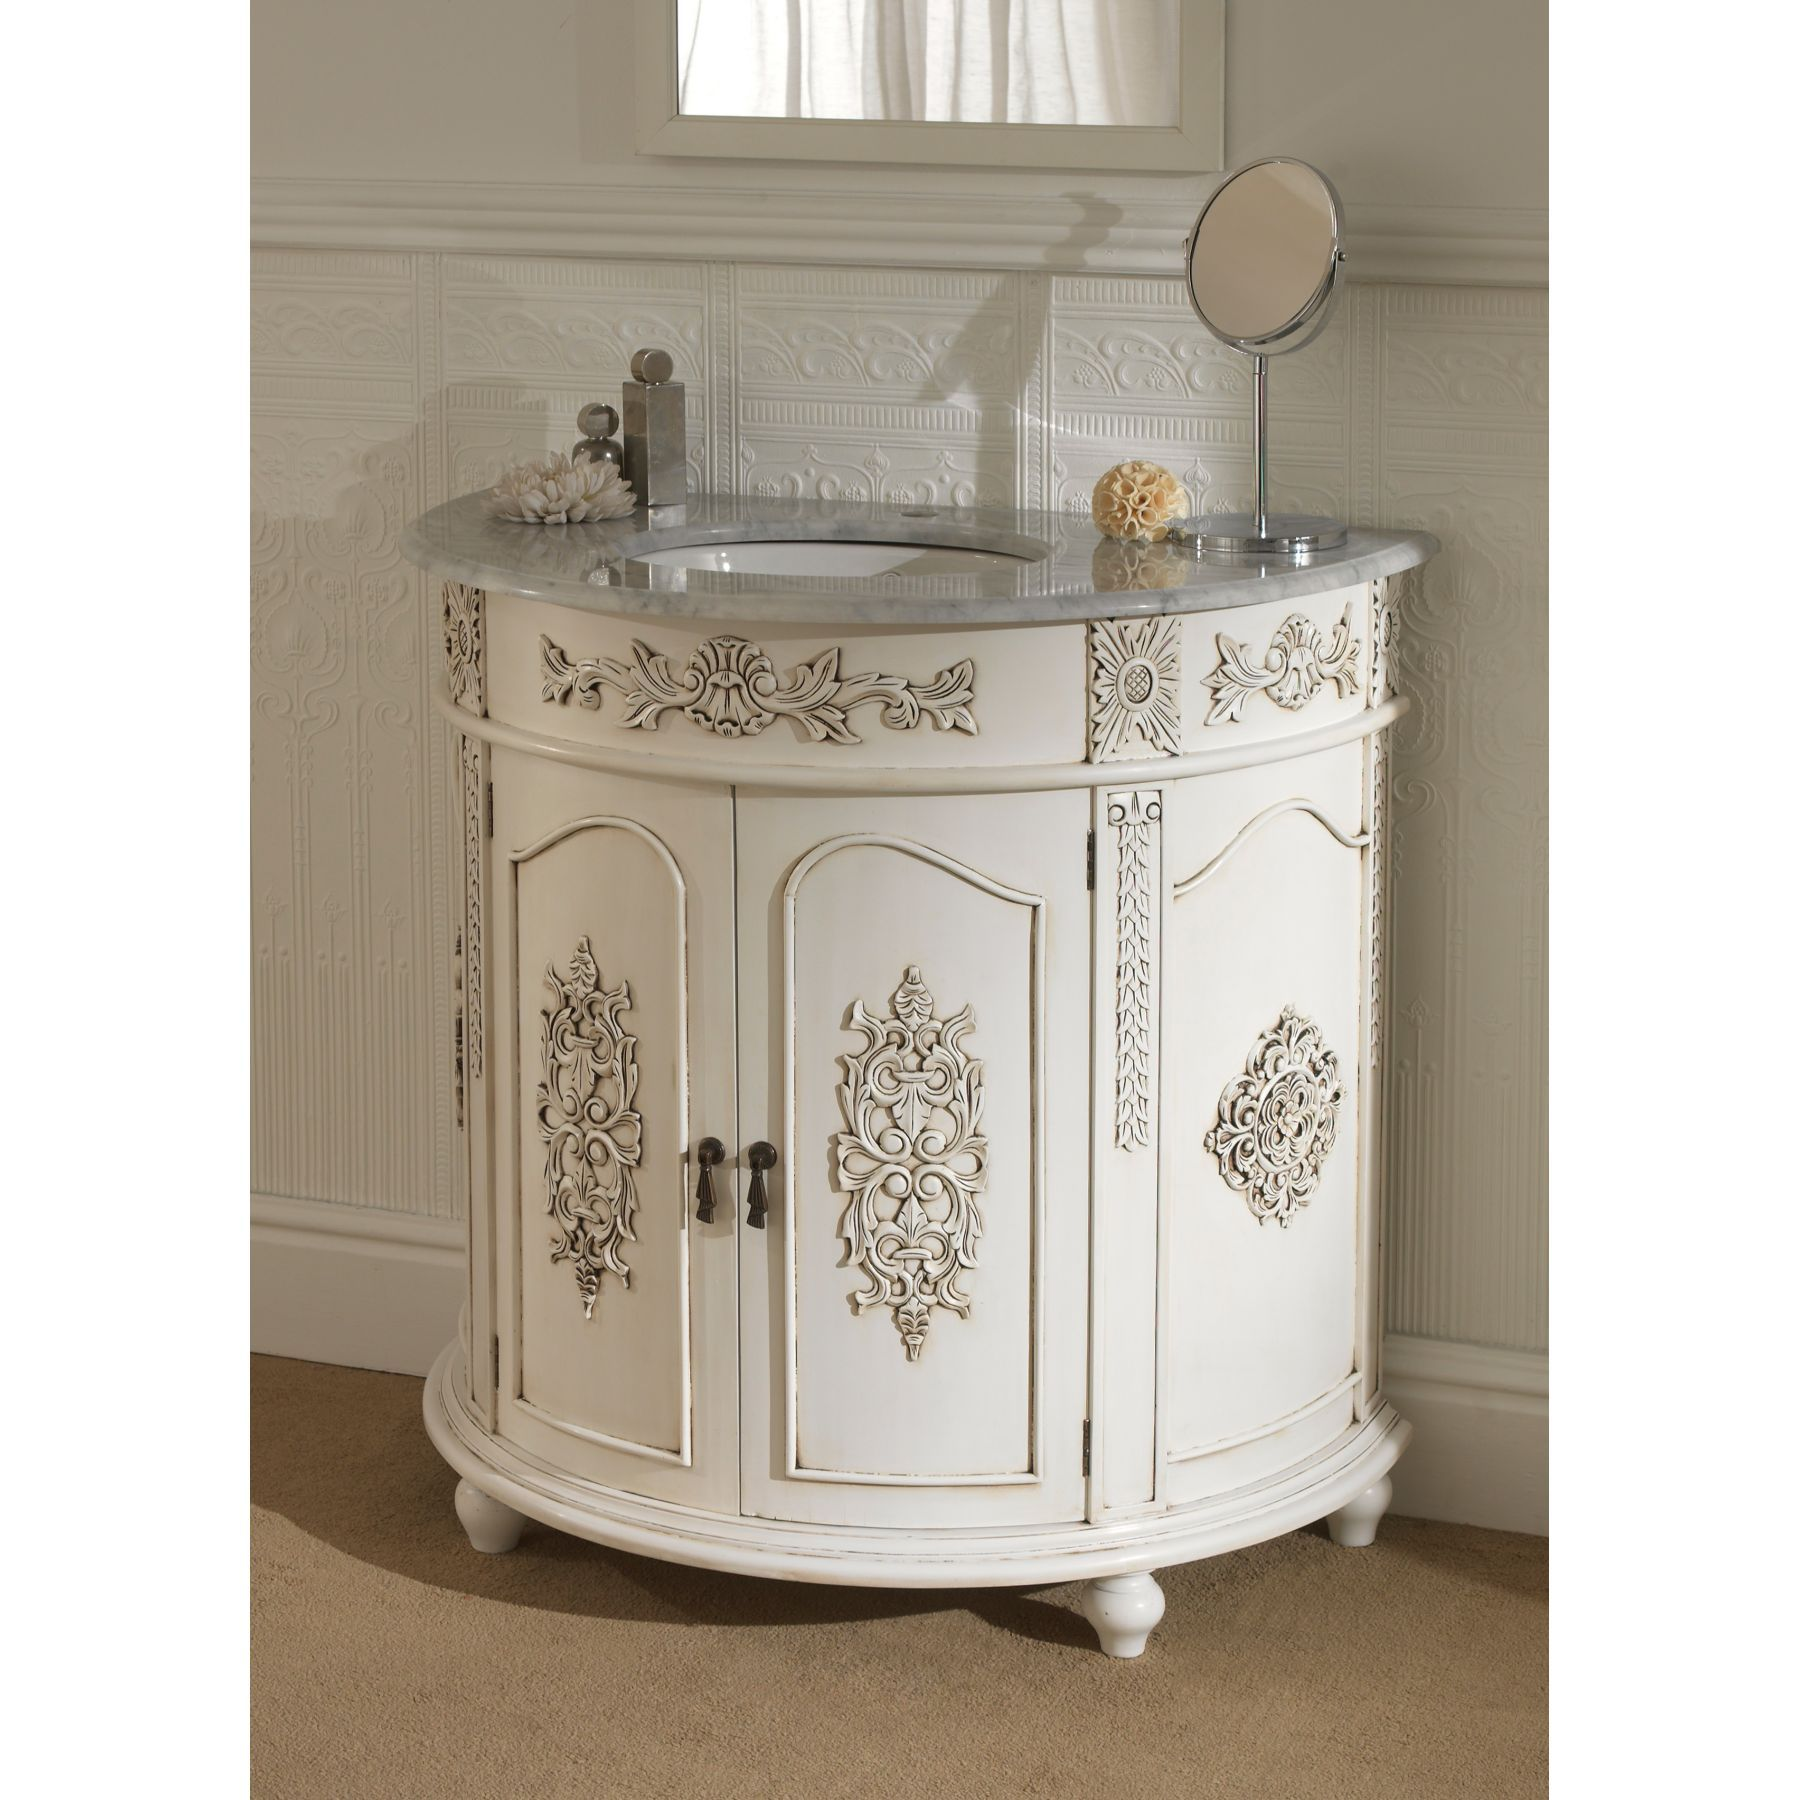 cabinet converted repurposed fullxfull ready antique vanity pirb to solid il wide furniture bathroom wood listing paint